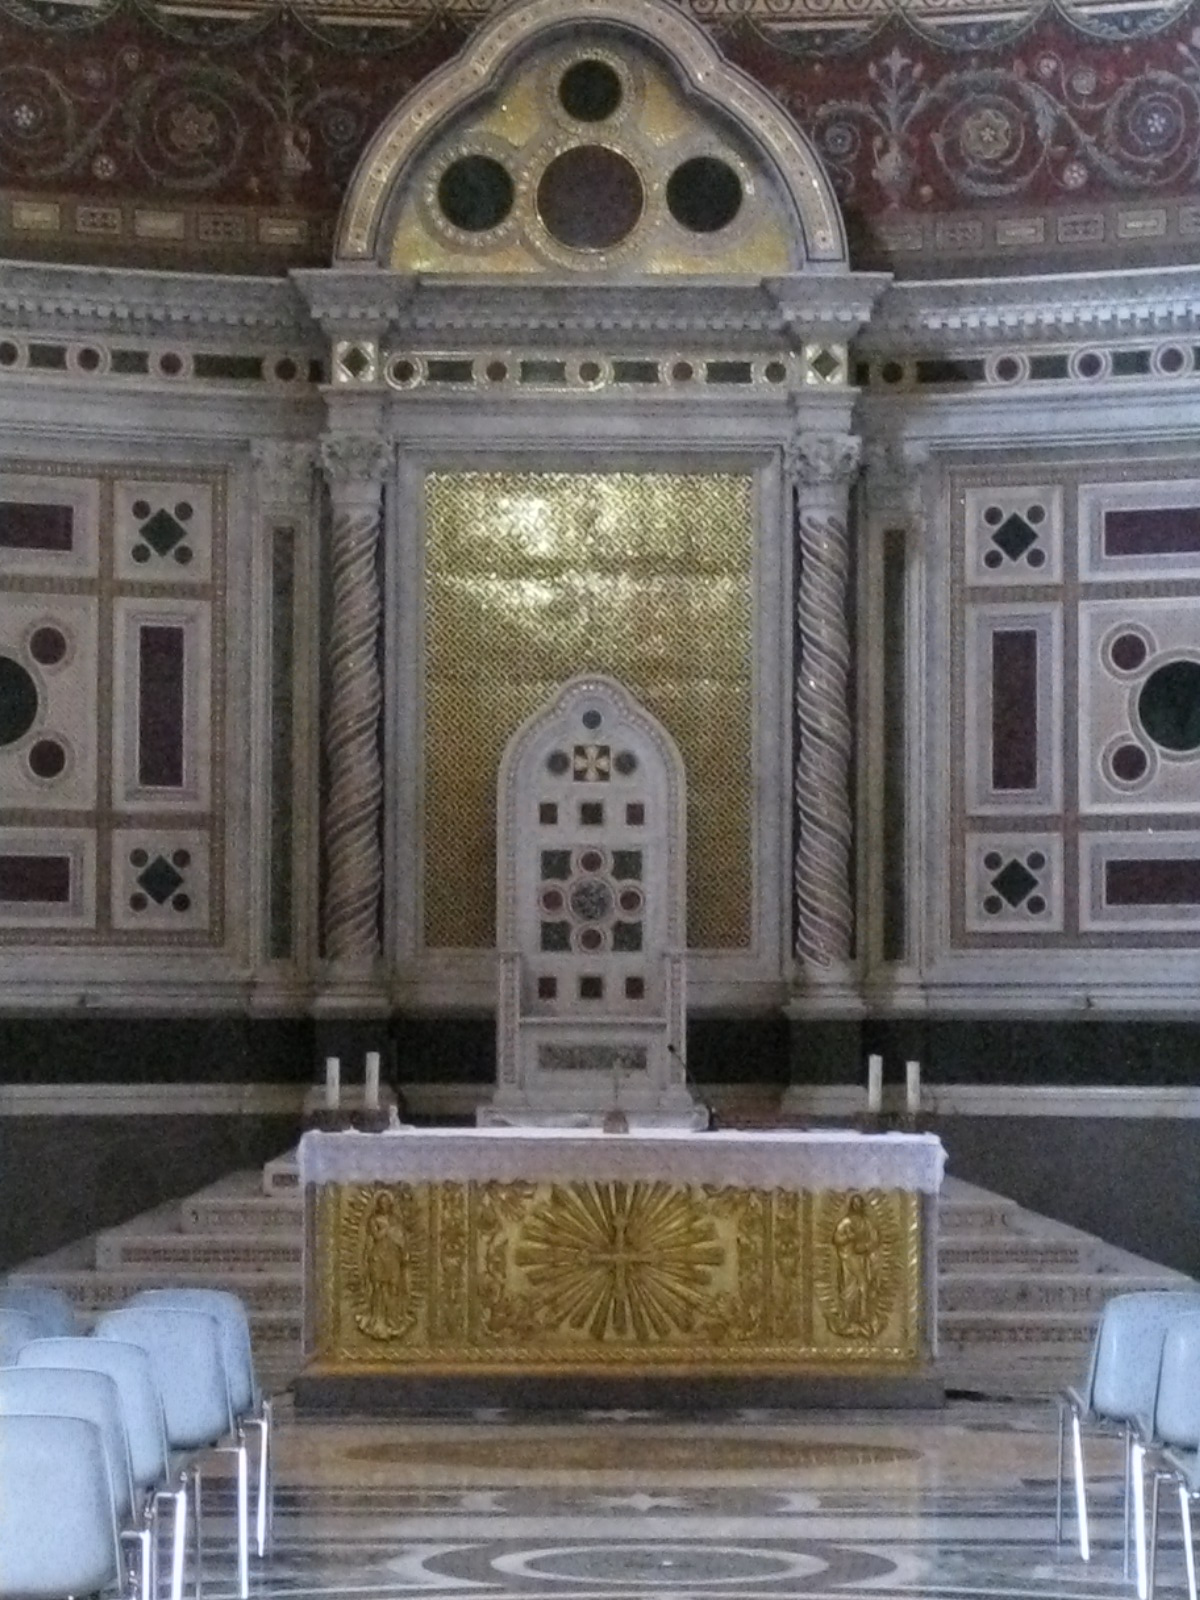 The Pope's Cathedra